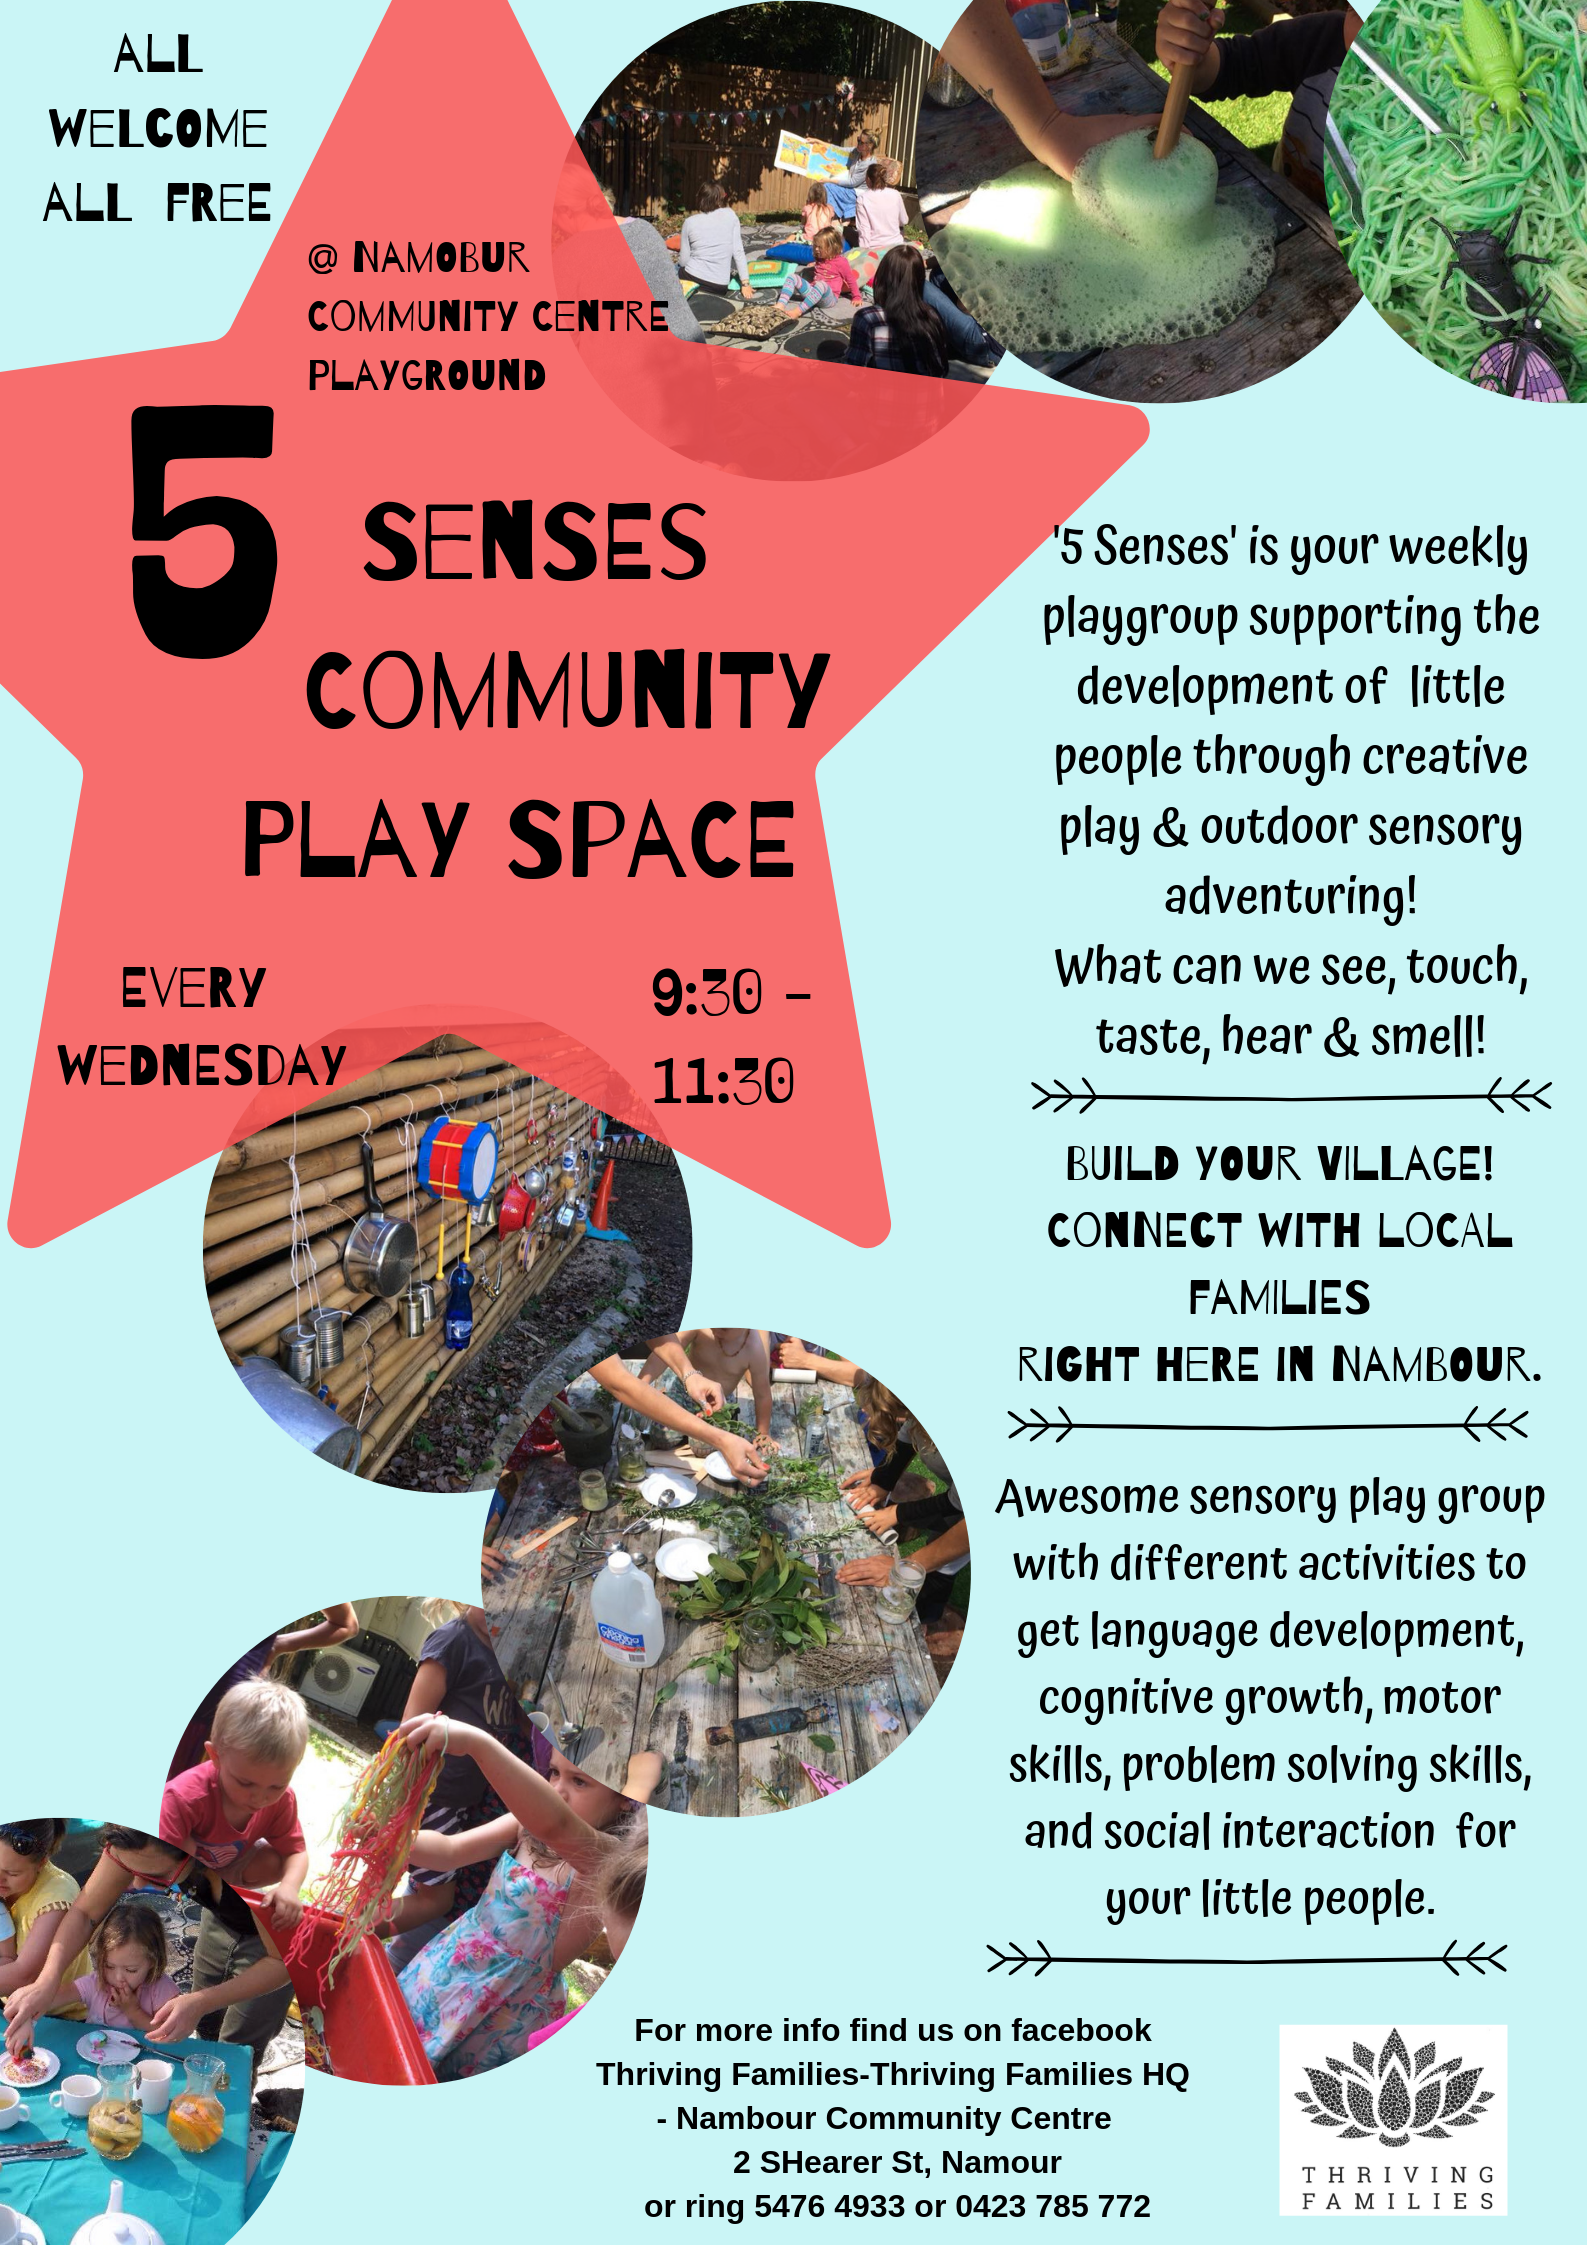 Senses Community Play Space